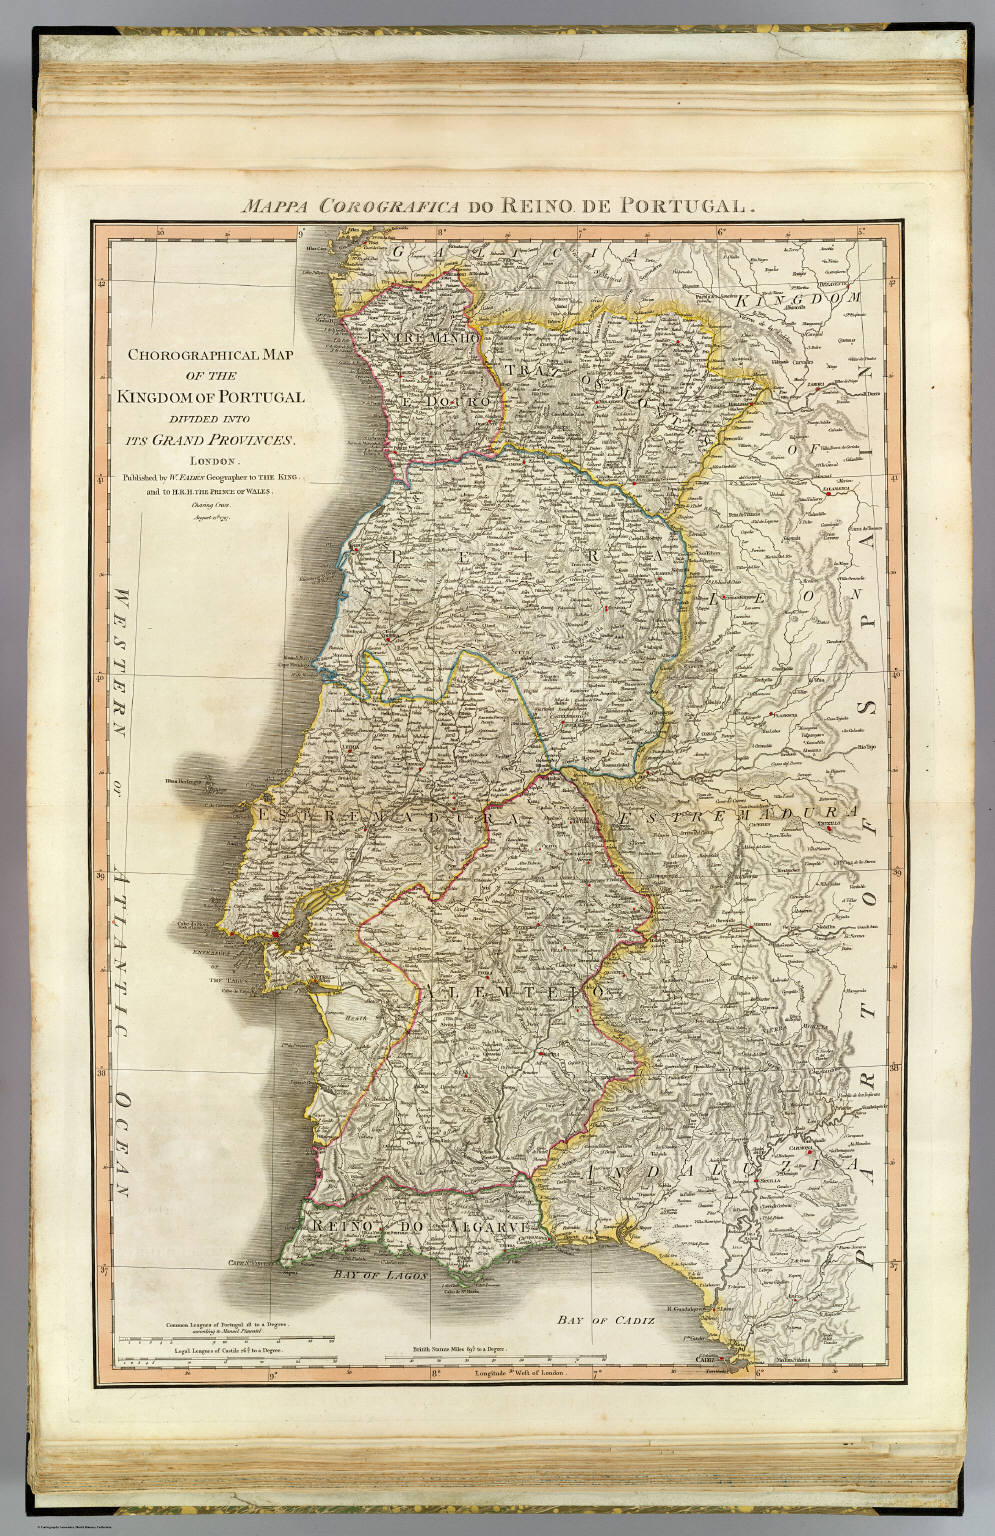 Portugal David Rumsey Historical Map Collection - Portugal historical map